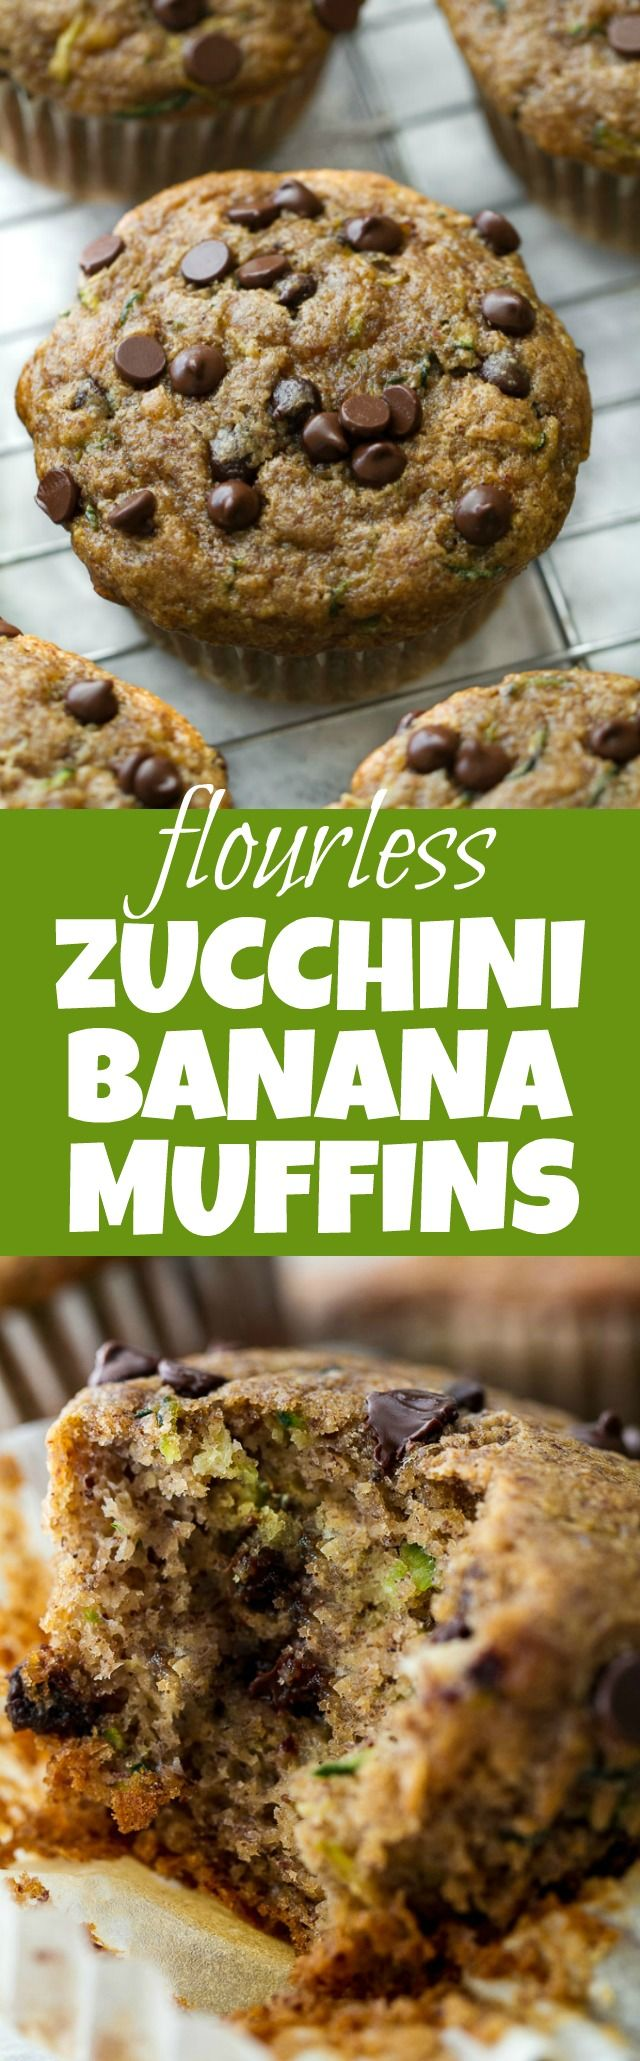 Flourless chocolate chip zucchini banana muffins that are so tender and flavourful, you'd never know they were made without flour, oil, or refined sugar. Gluten free and made with wholesome ingredients, they make a healthy and delicious breakfast or snack